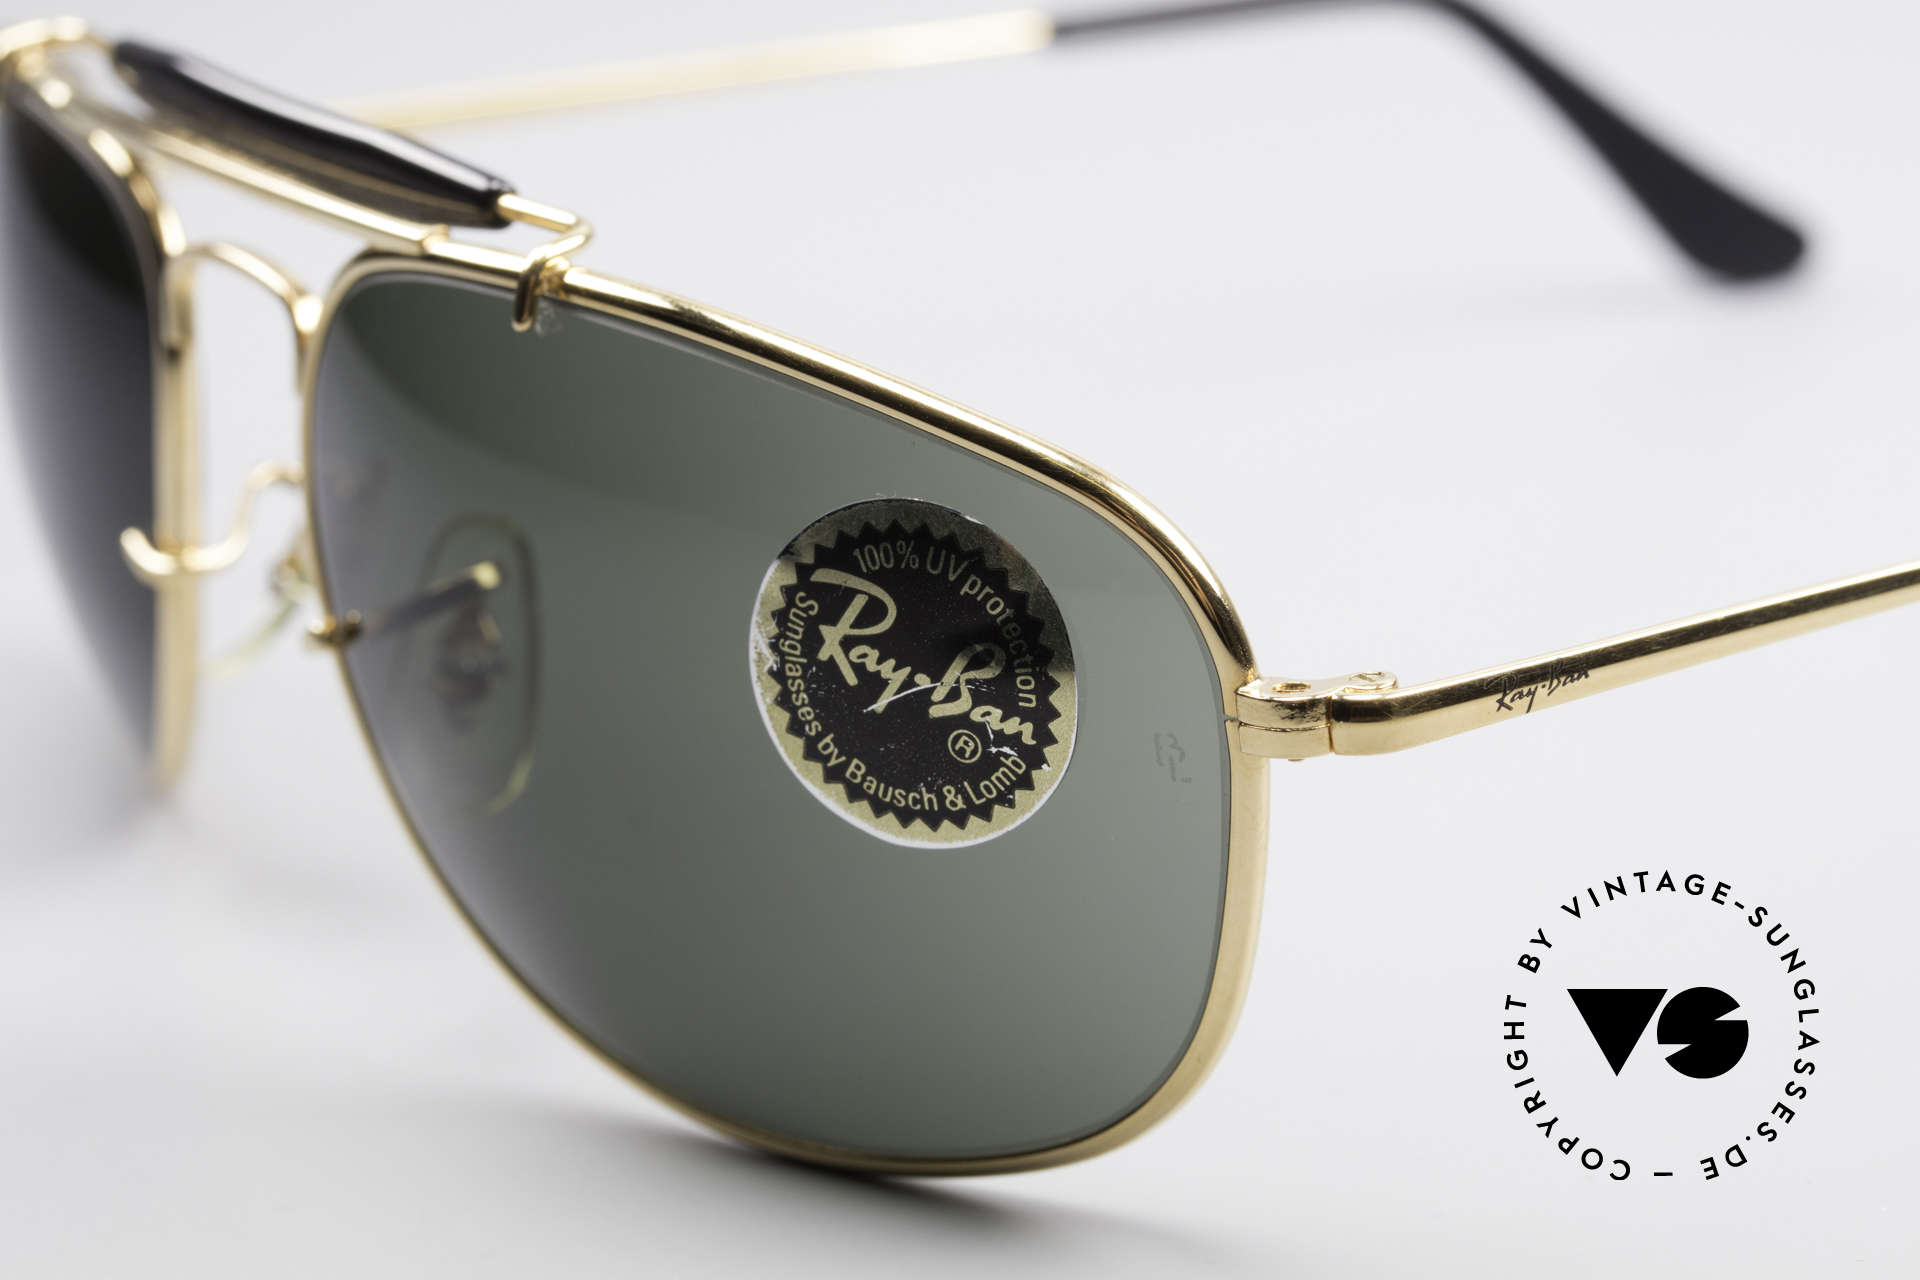 Ray Ban Sport Metal 1992 Rare Olympic Series B&L USA, unworn; like all our vintage USA Ray Ban sports glasses, Made for Men